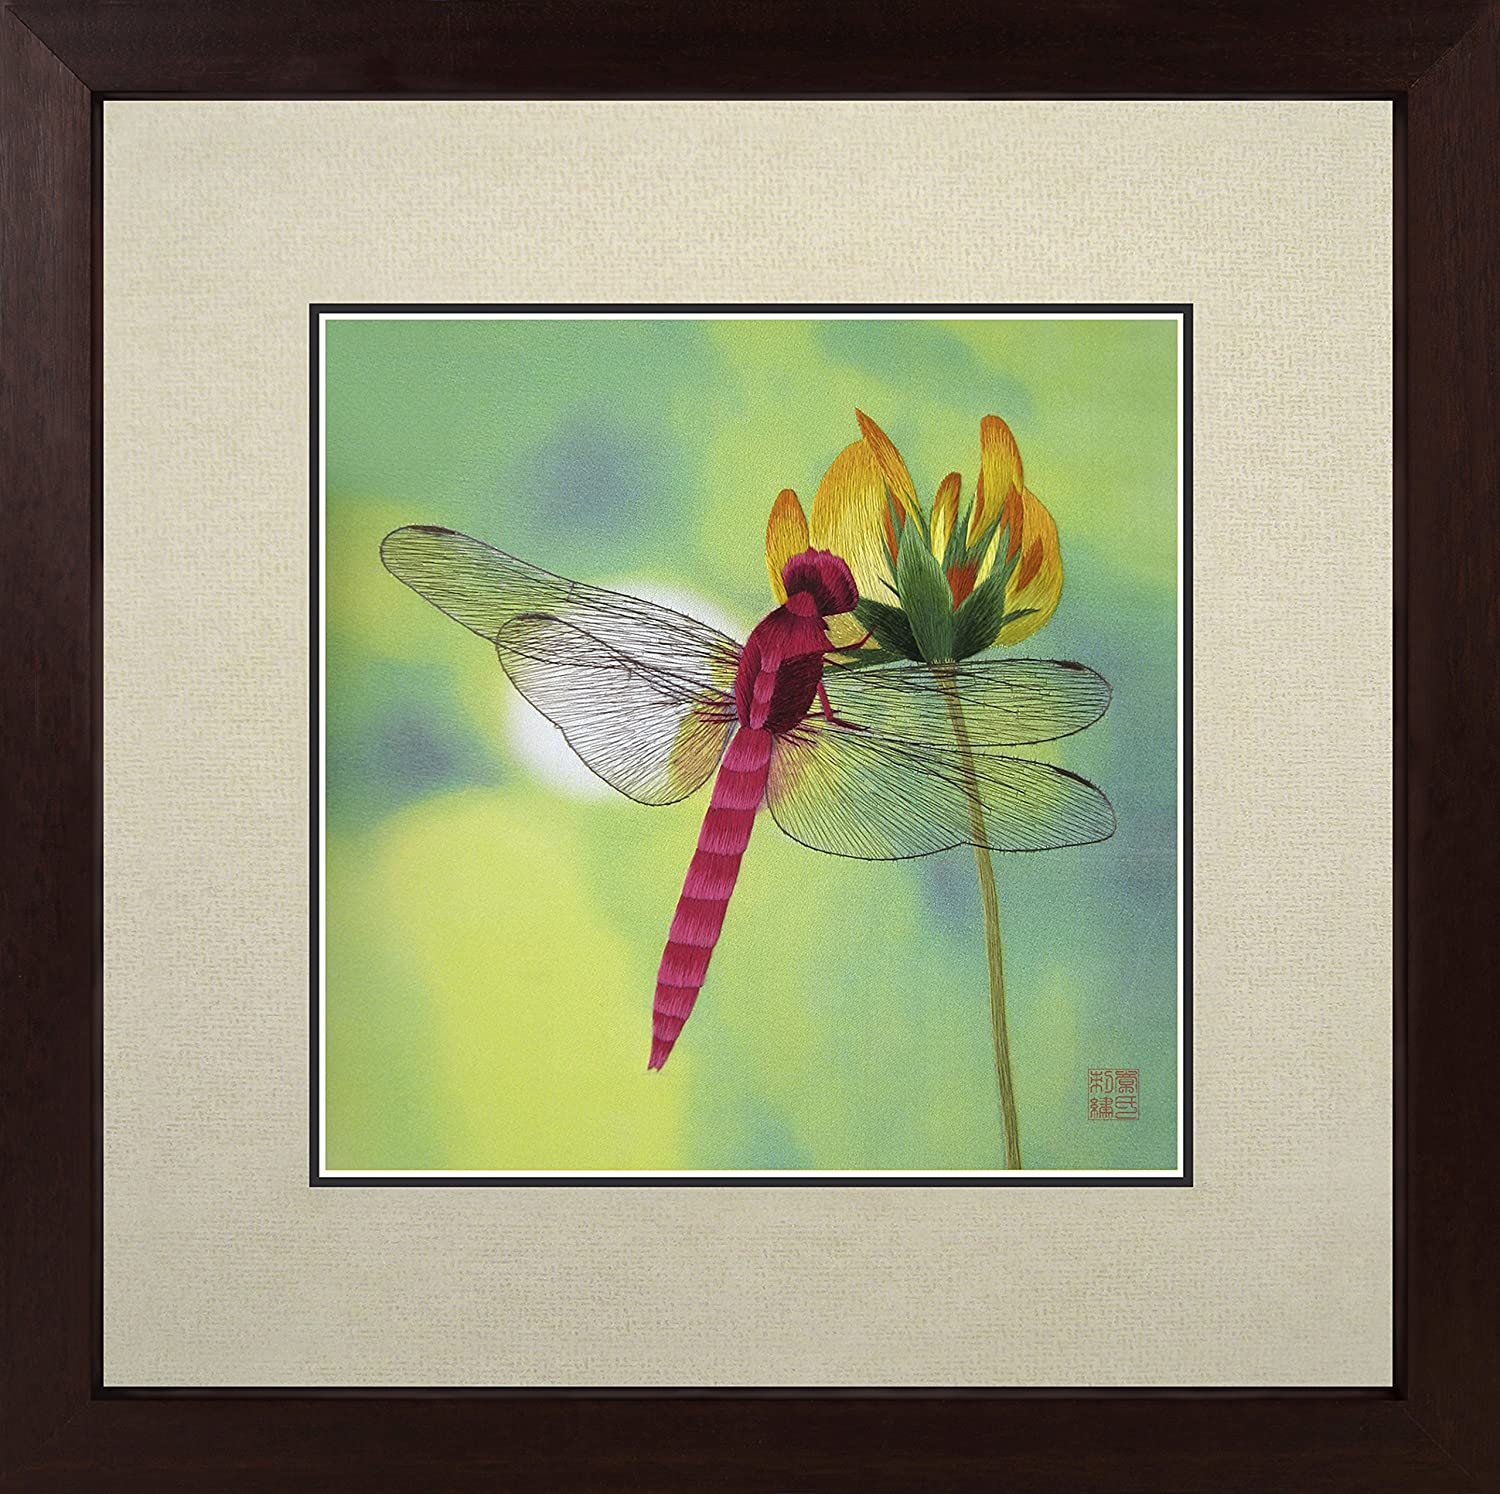 King Silk Art 100% Handmade Embroidery Multiple Framed Magenta Dragonfly Kisses A Yellow Flower Oriental Wall Hanging Art Asian Decoration Tapestry Artwork Picture Gifts 33019WFC3